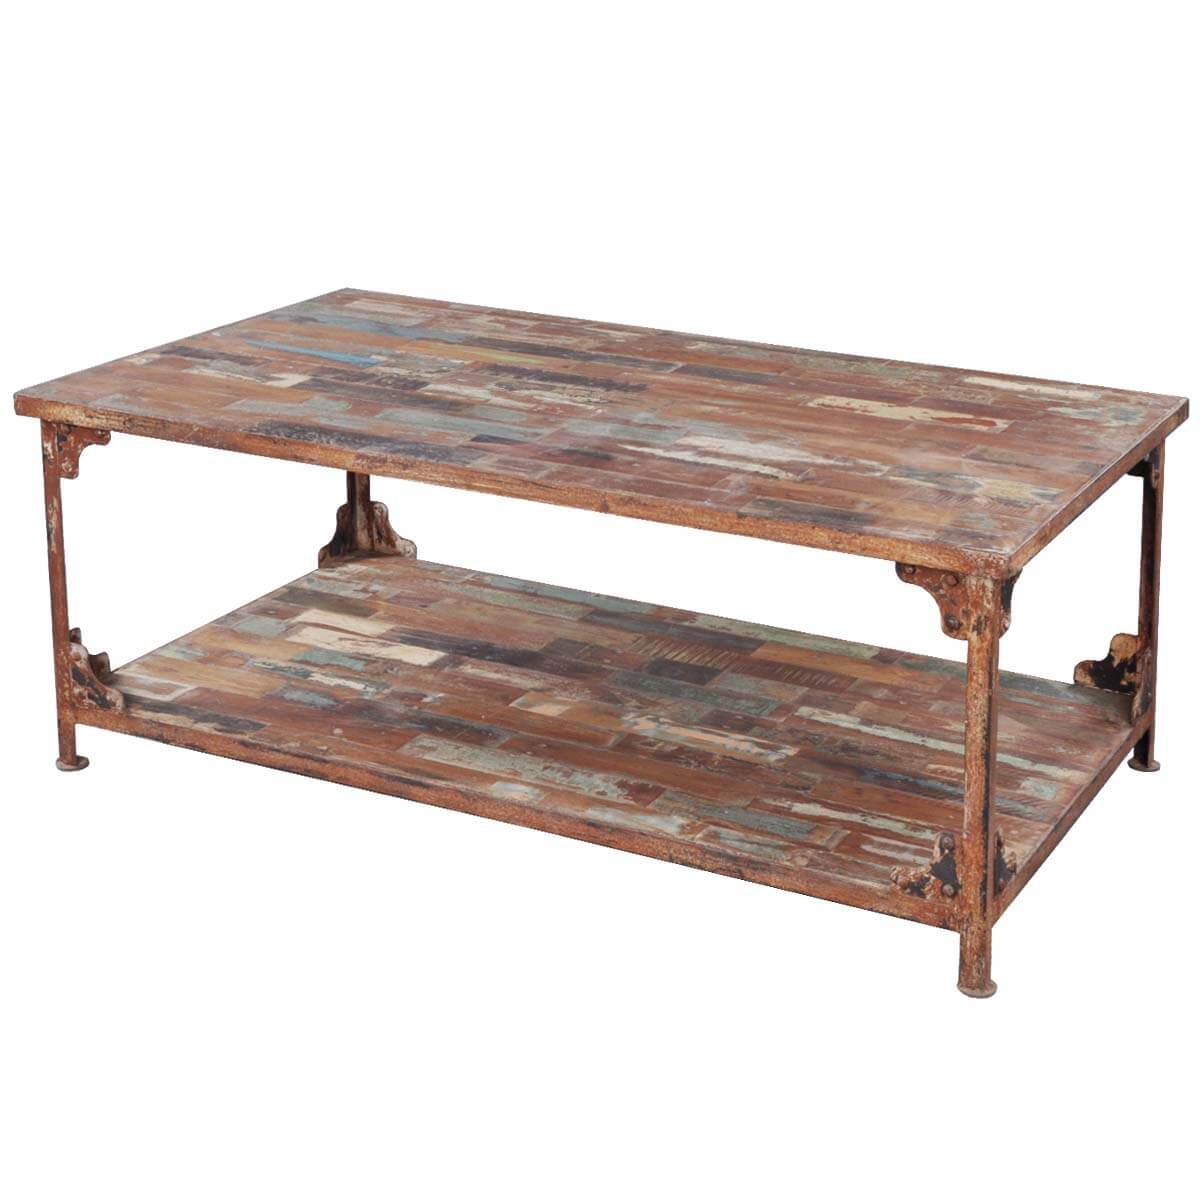 Wrought Iron And Wood End Tables Distressed Reclaimed Wood Wrought Iron Industrial Rustic